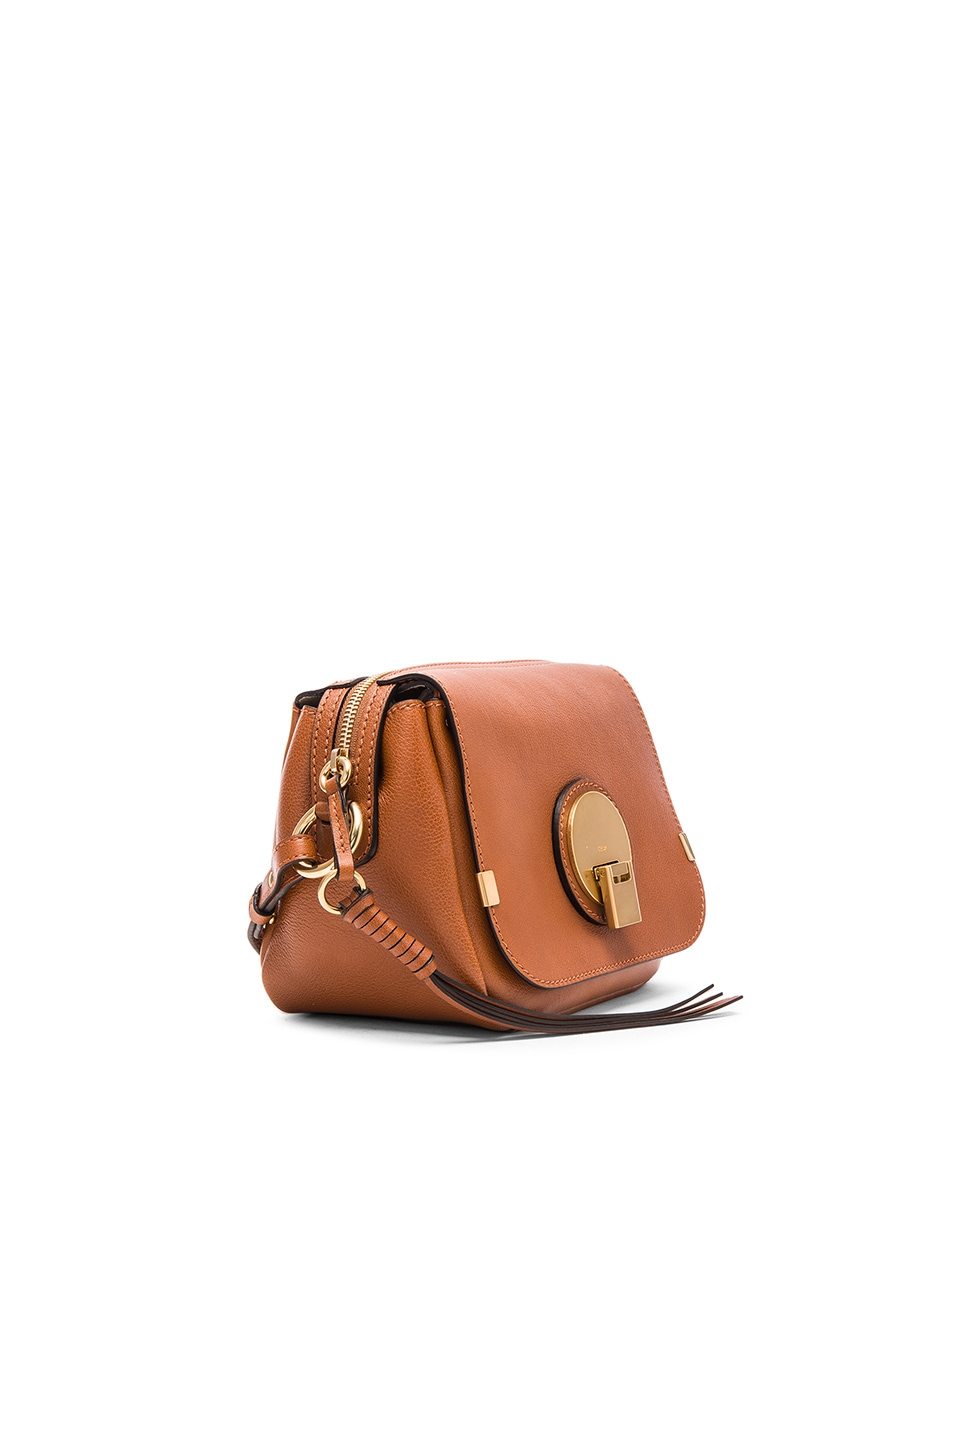 chleo bag - chloe small jodie leather suede camera bag, chloe knockoff